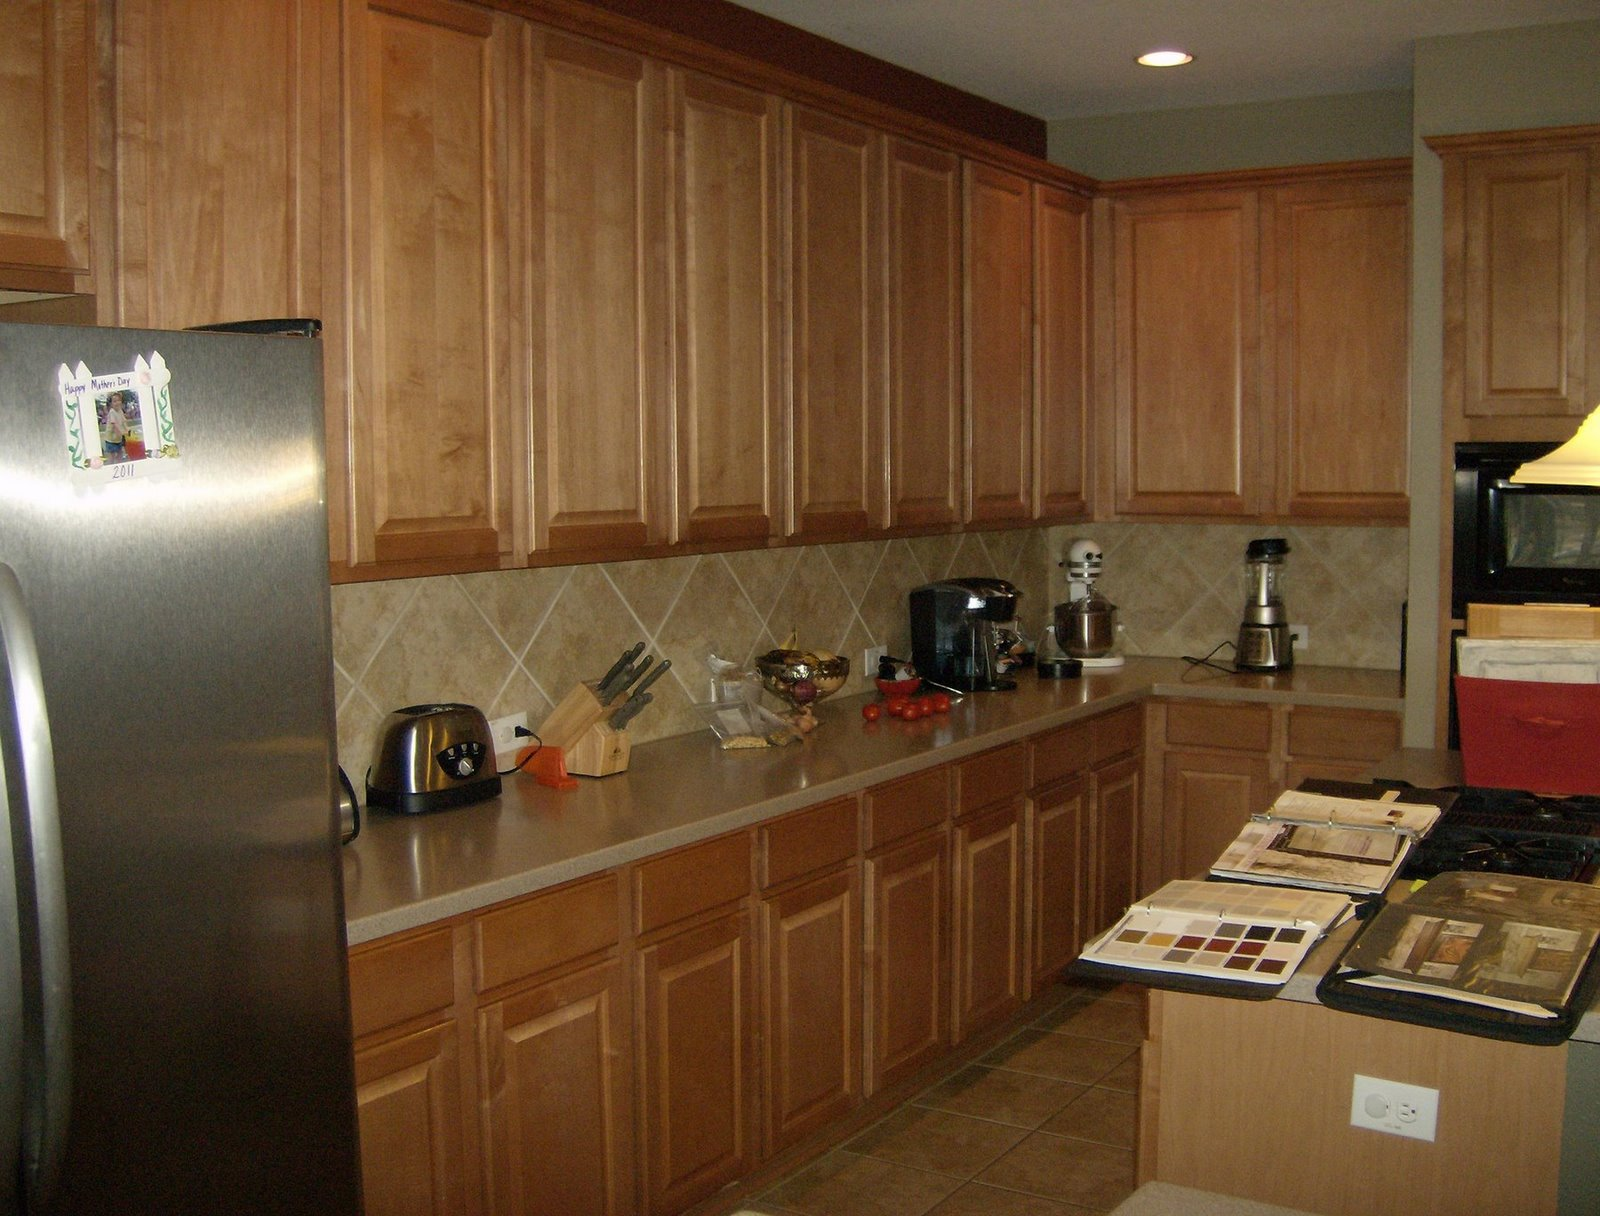 Honey Oak Cabinets with Dark Floors